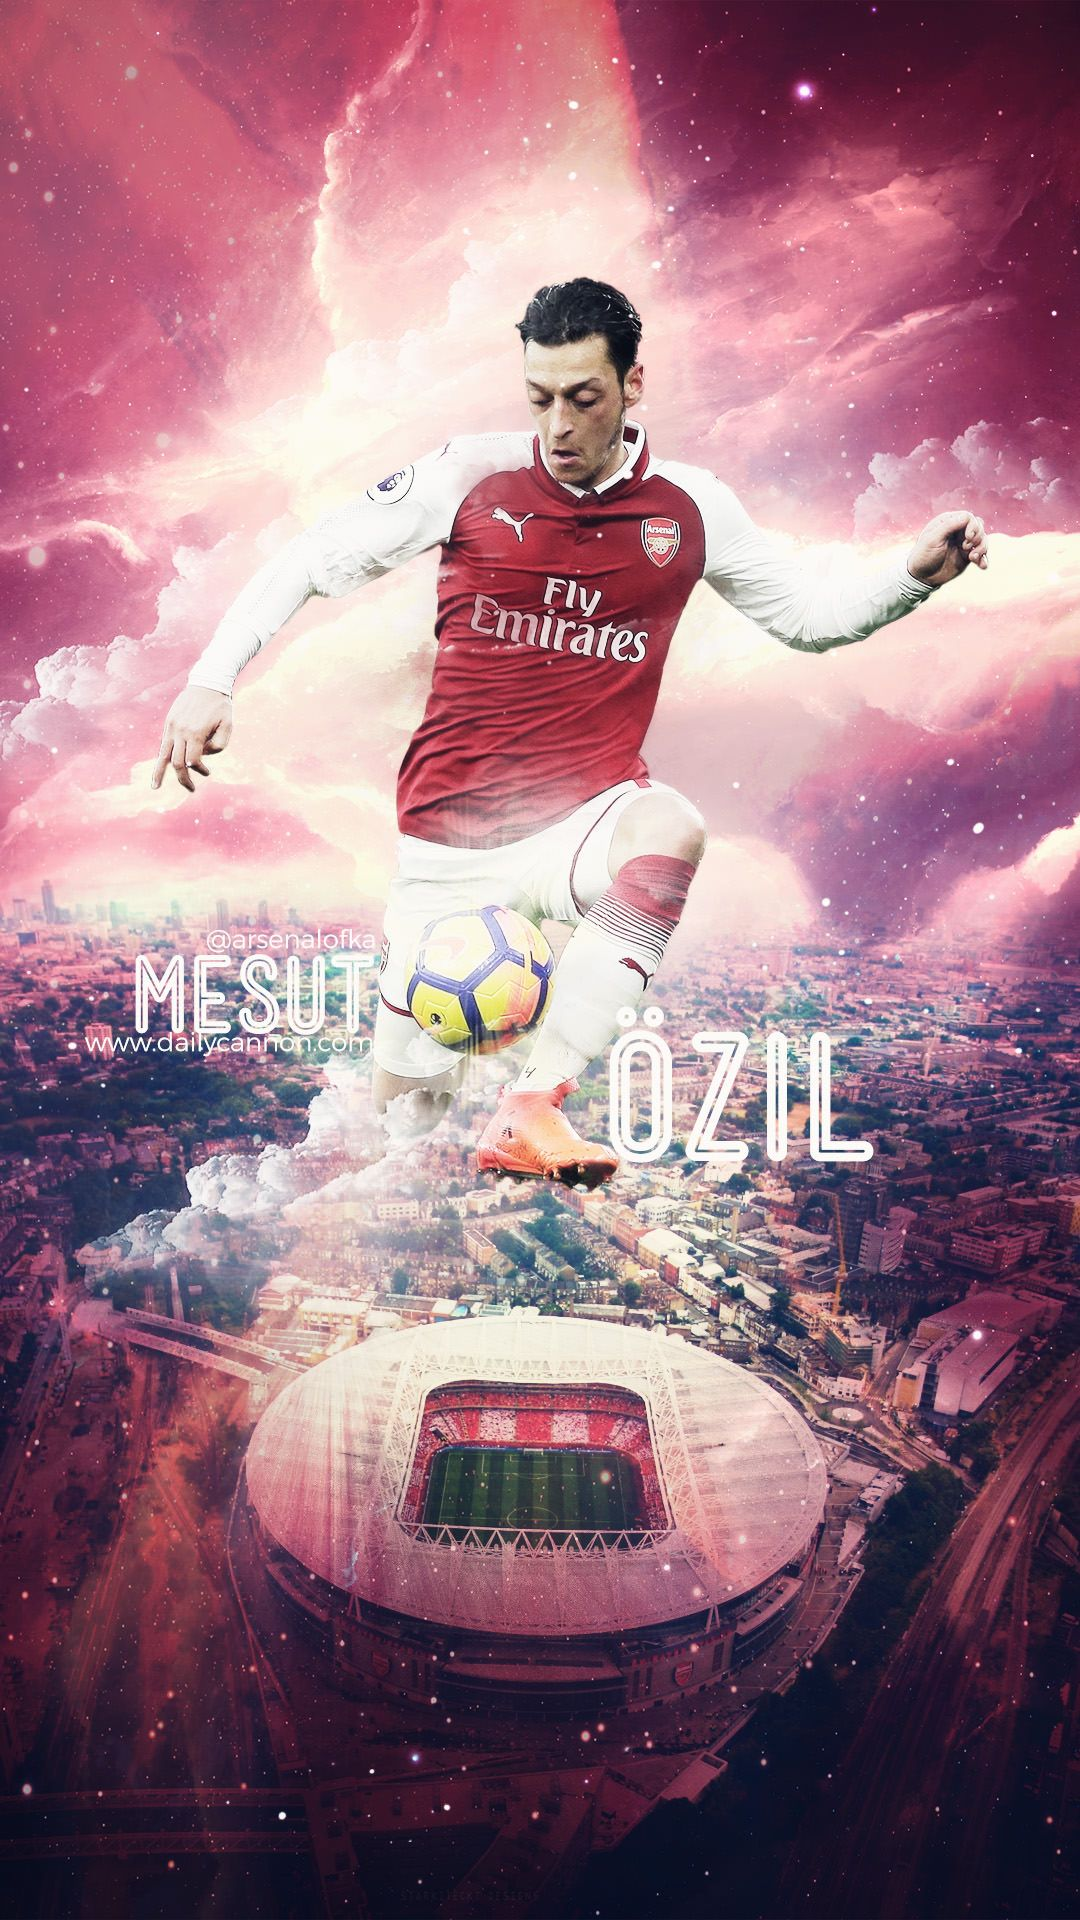 Mesut Ozil Iphone Wallpapers Wallpaperboat